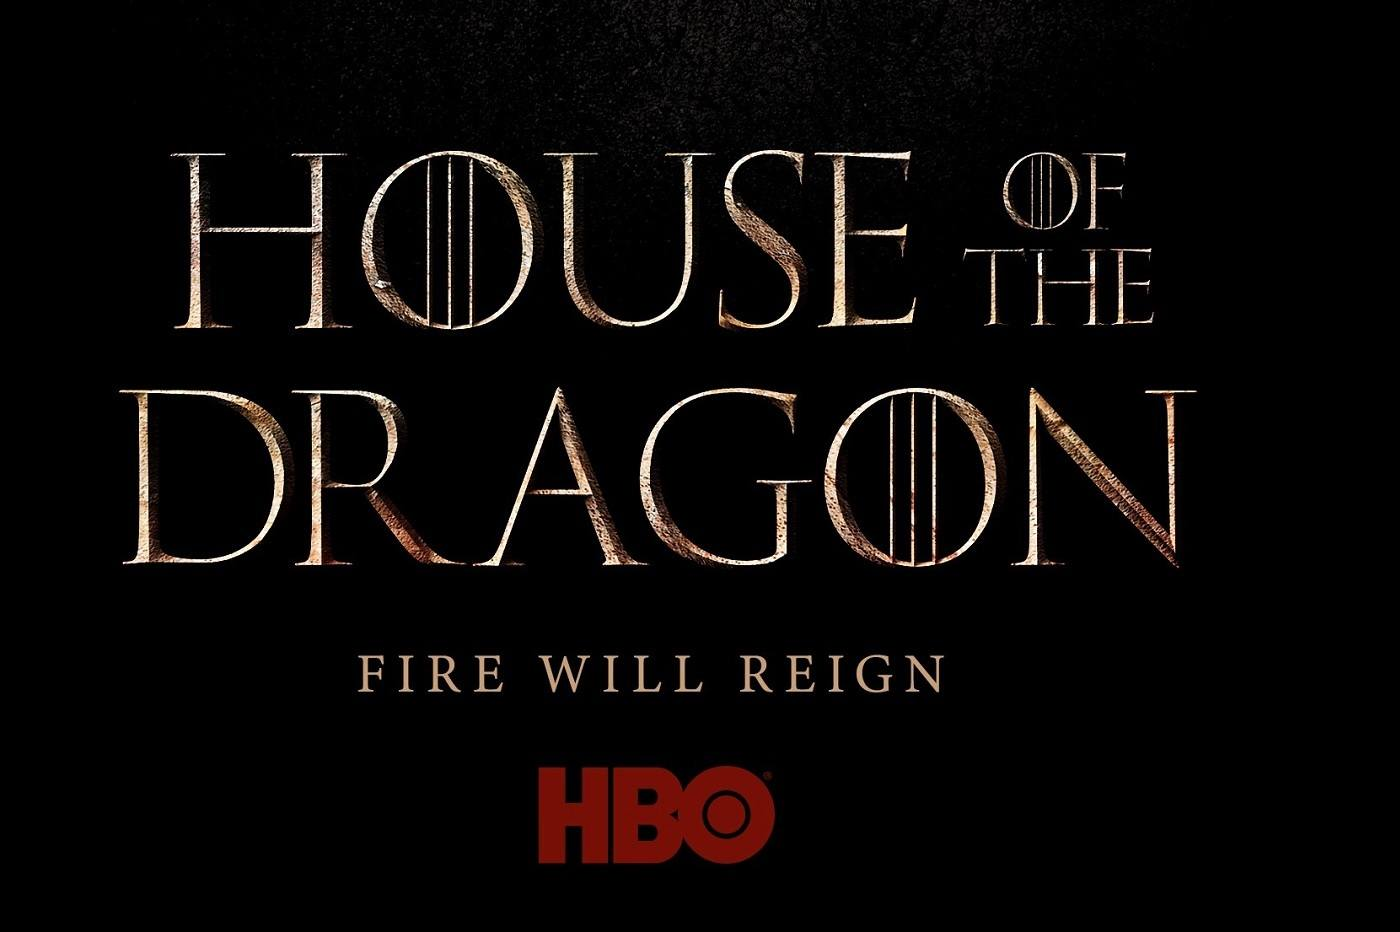 HBO - House of The Dragon